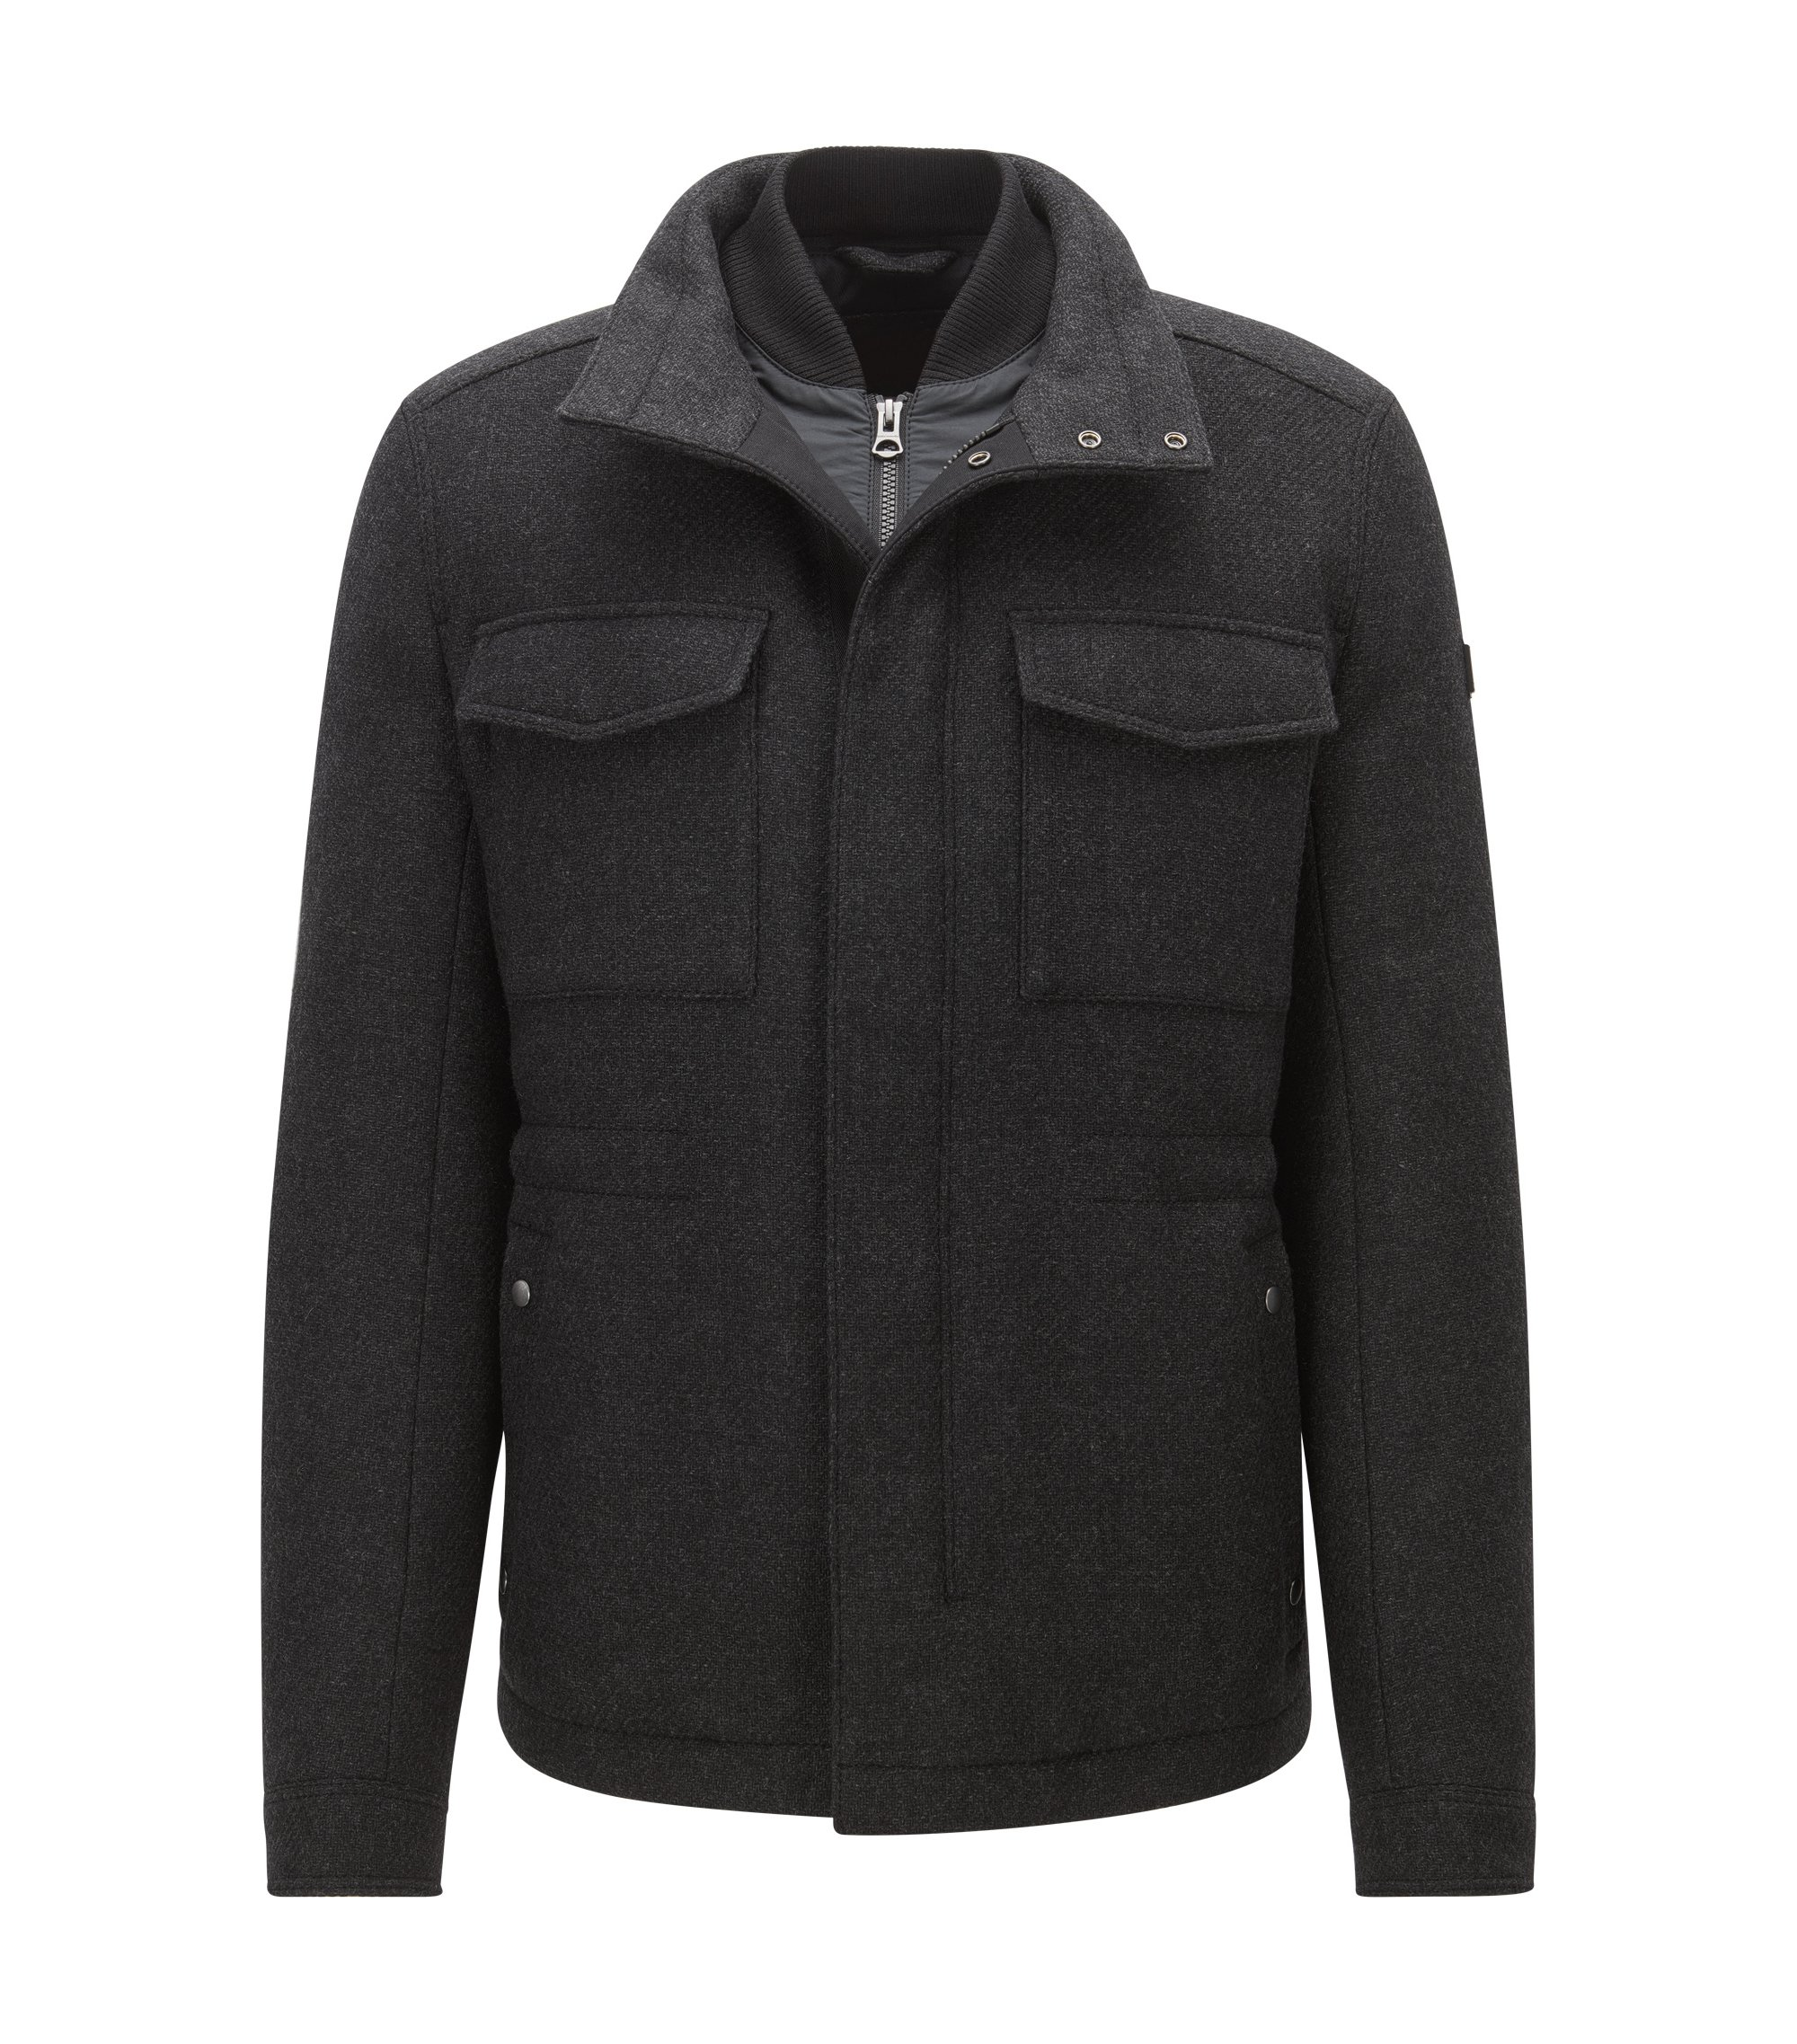 Manteau Regular Fit en laine mélangée, Noir